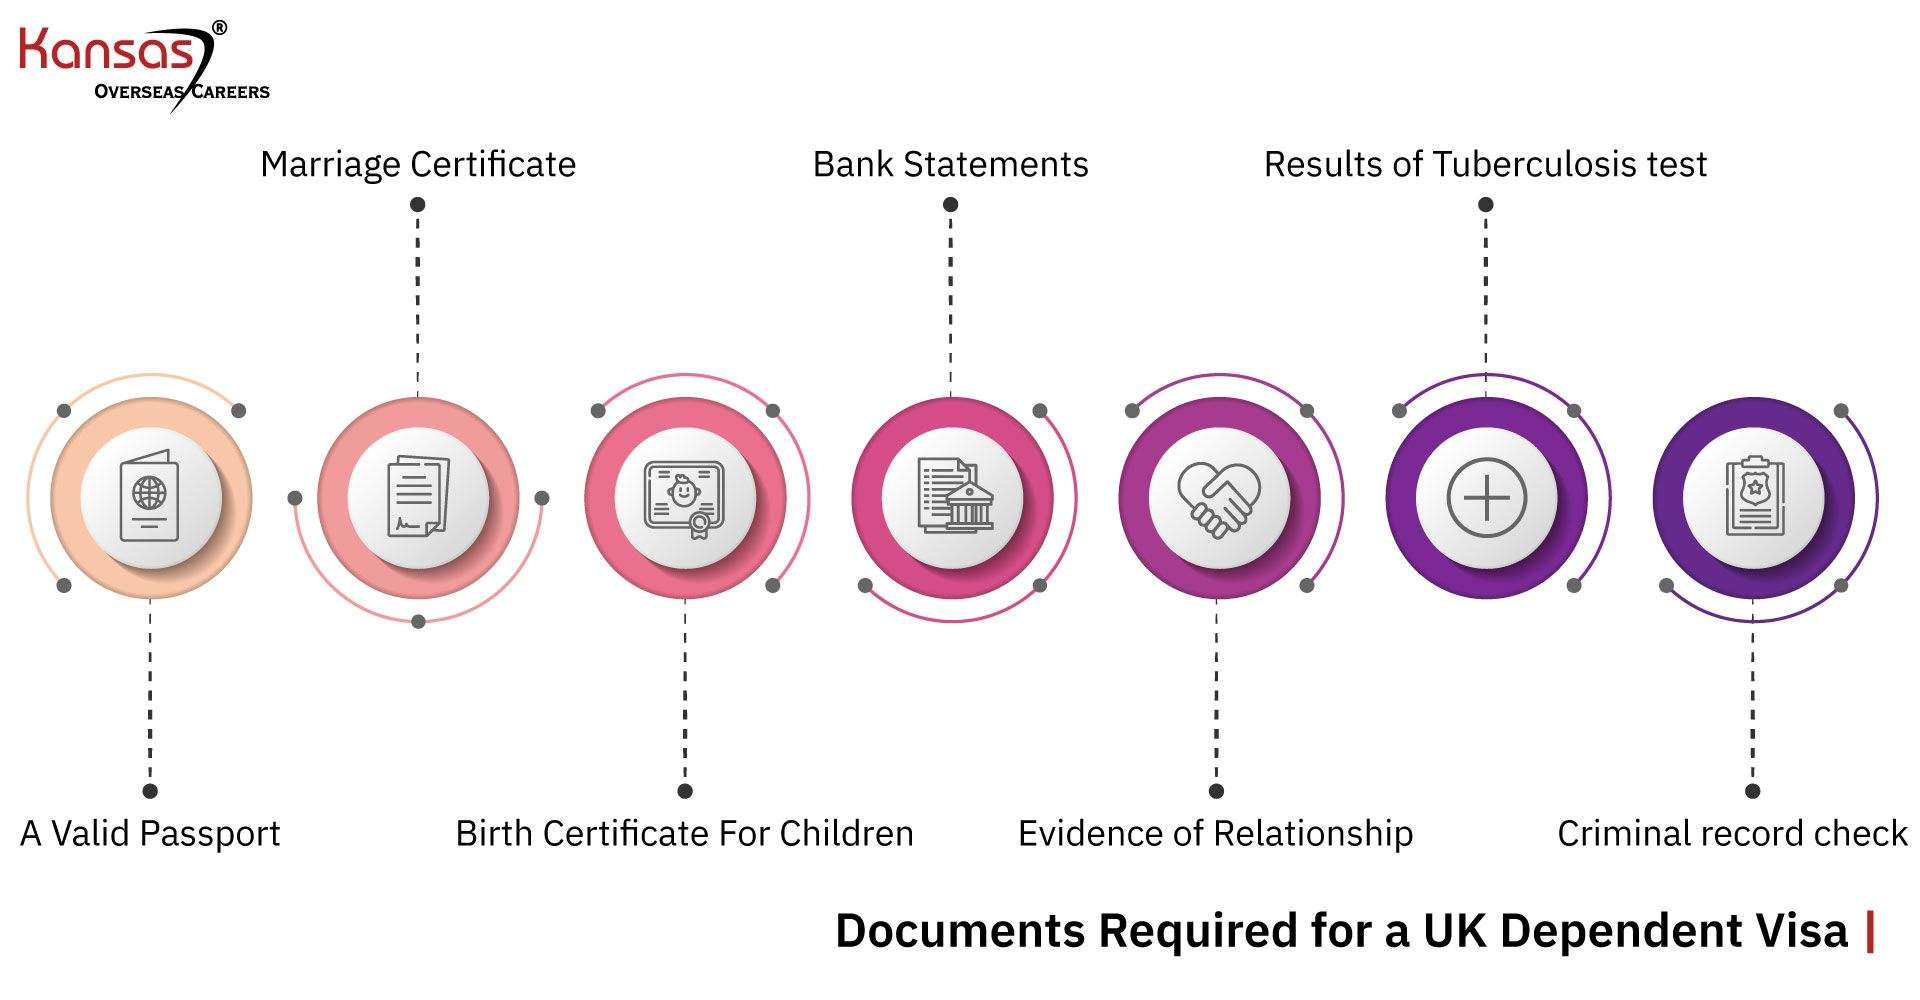 Documents-Required-for-a-UK-Dependent-Visa